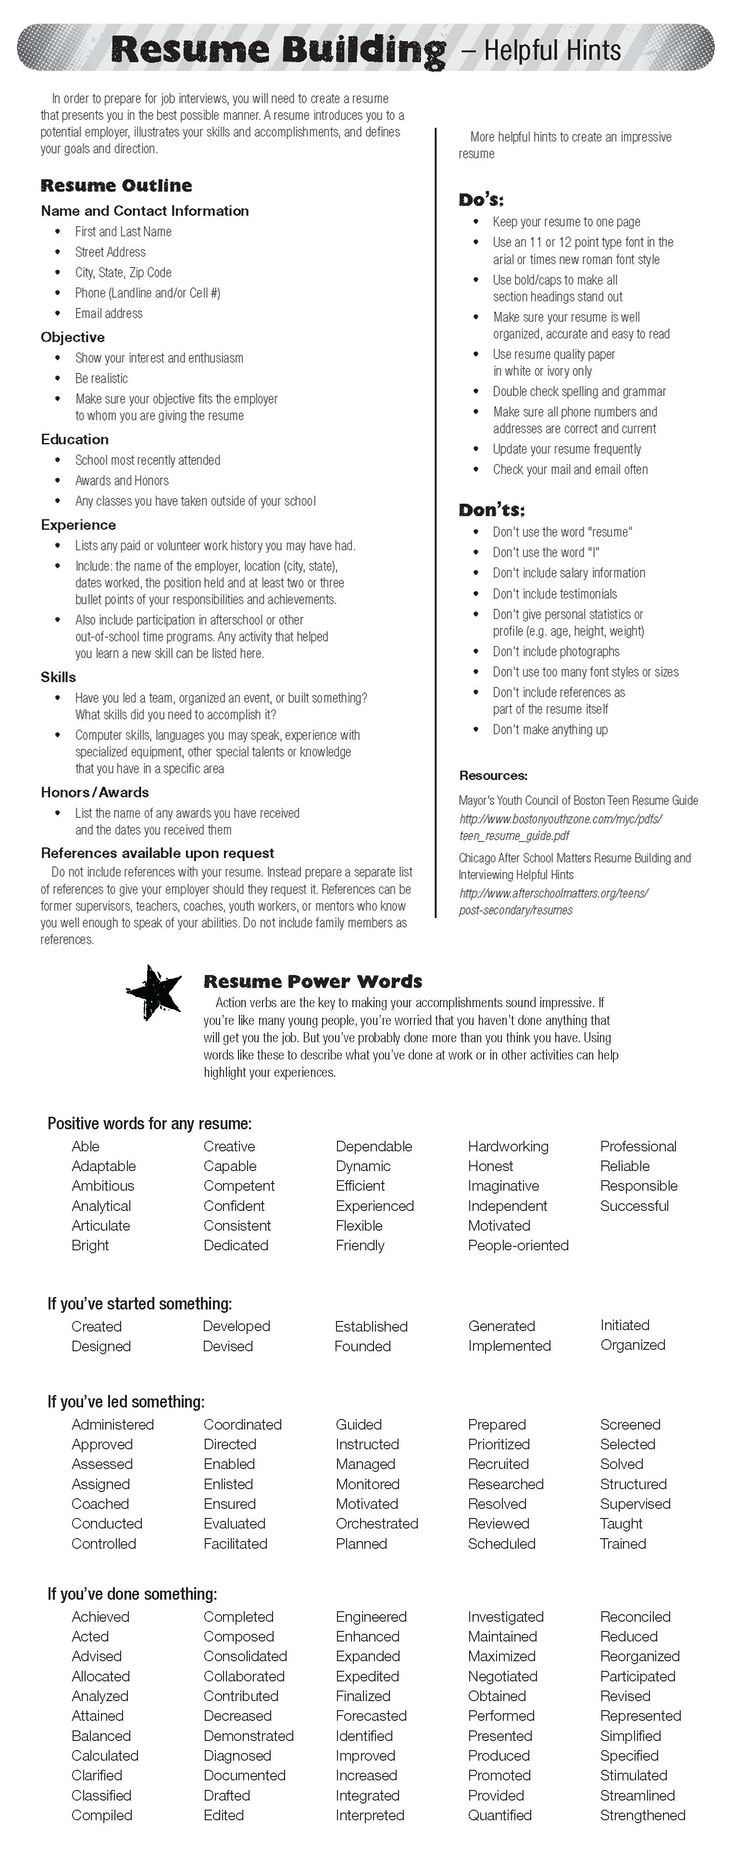 Opposenewapstandardsus  Unique  Ideas About Resume On Pinterest  Cv Format Resume Cv And  With Handsome  Ideas About Resume On Pinterest  Cv Format Resume Cv And Resume Templates With Archaic Customer Service Skills List Resume Also Resume Online For Free In Addition Resume Tool And Junior Financial Analyst Resume As Well As Free Online Resume Builder Printable Additionally How To Start Resume From Pinterestcom With Opposenewapstandardsus  Handsome  Ideas About Resume On Pinterest  Cv Format Resume Cv And  With Archaic  Ideas About Resume On Pinterest  Cv Format Resume Cv And Resume Templates And Unique Customer Service Skills List Resume Also Resume Online For Free In Addition Resume Tool From Pinterestcom